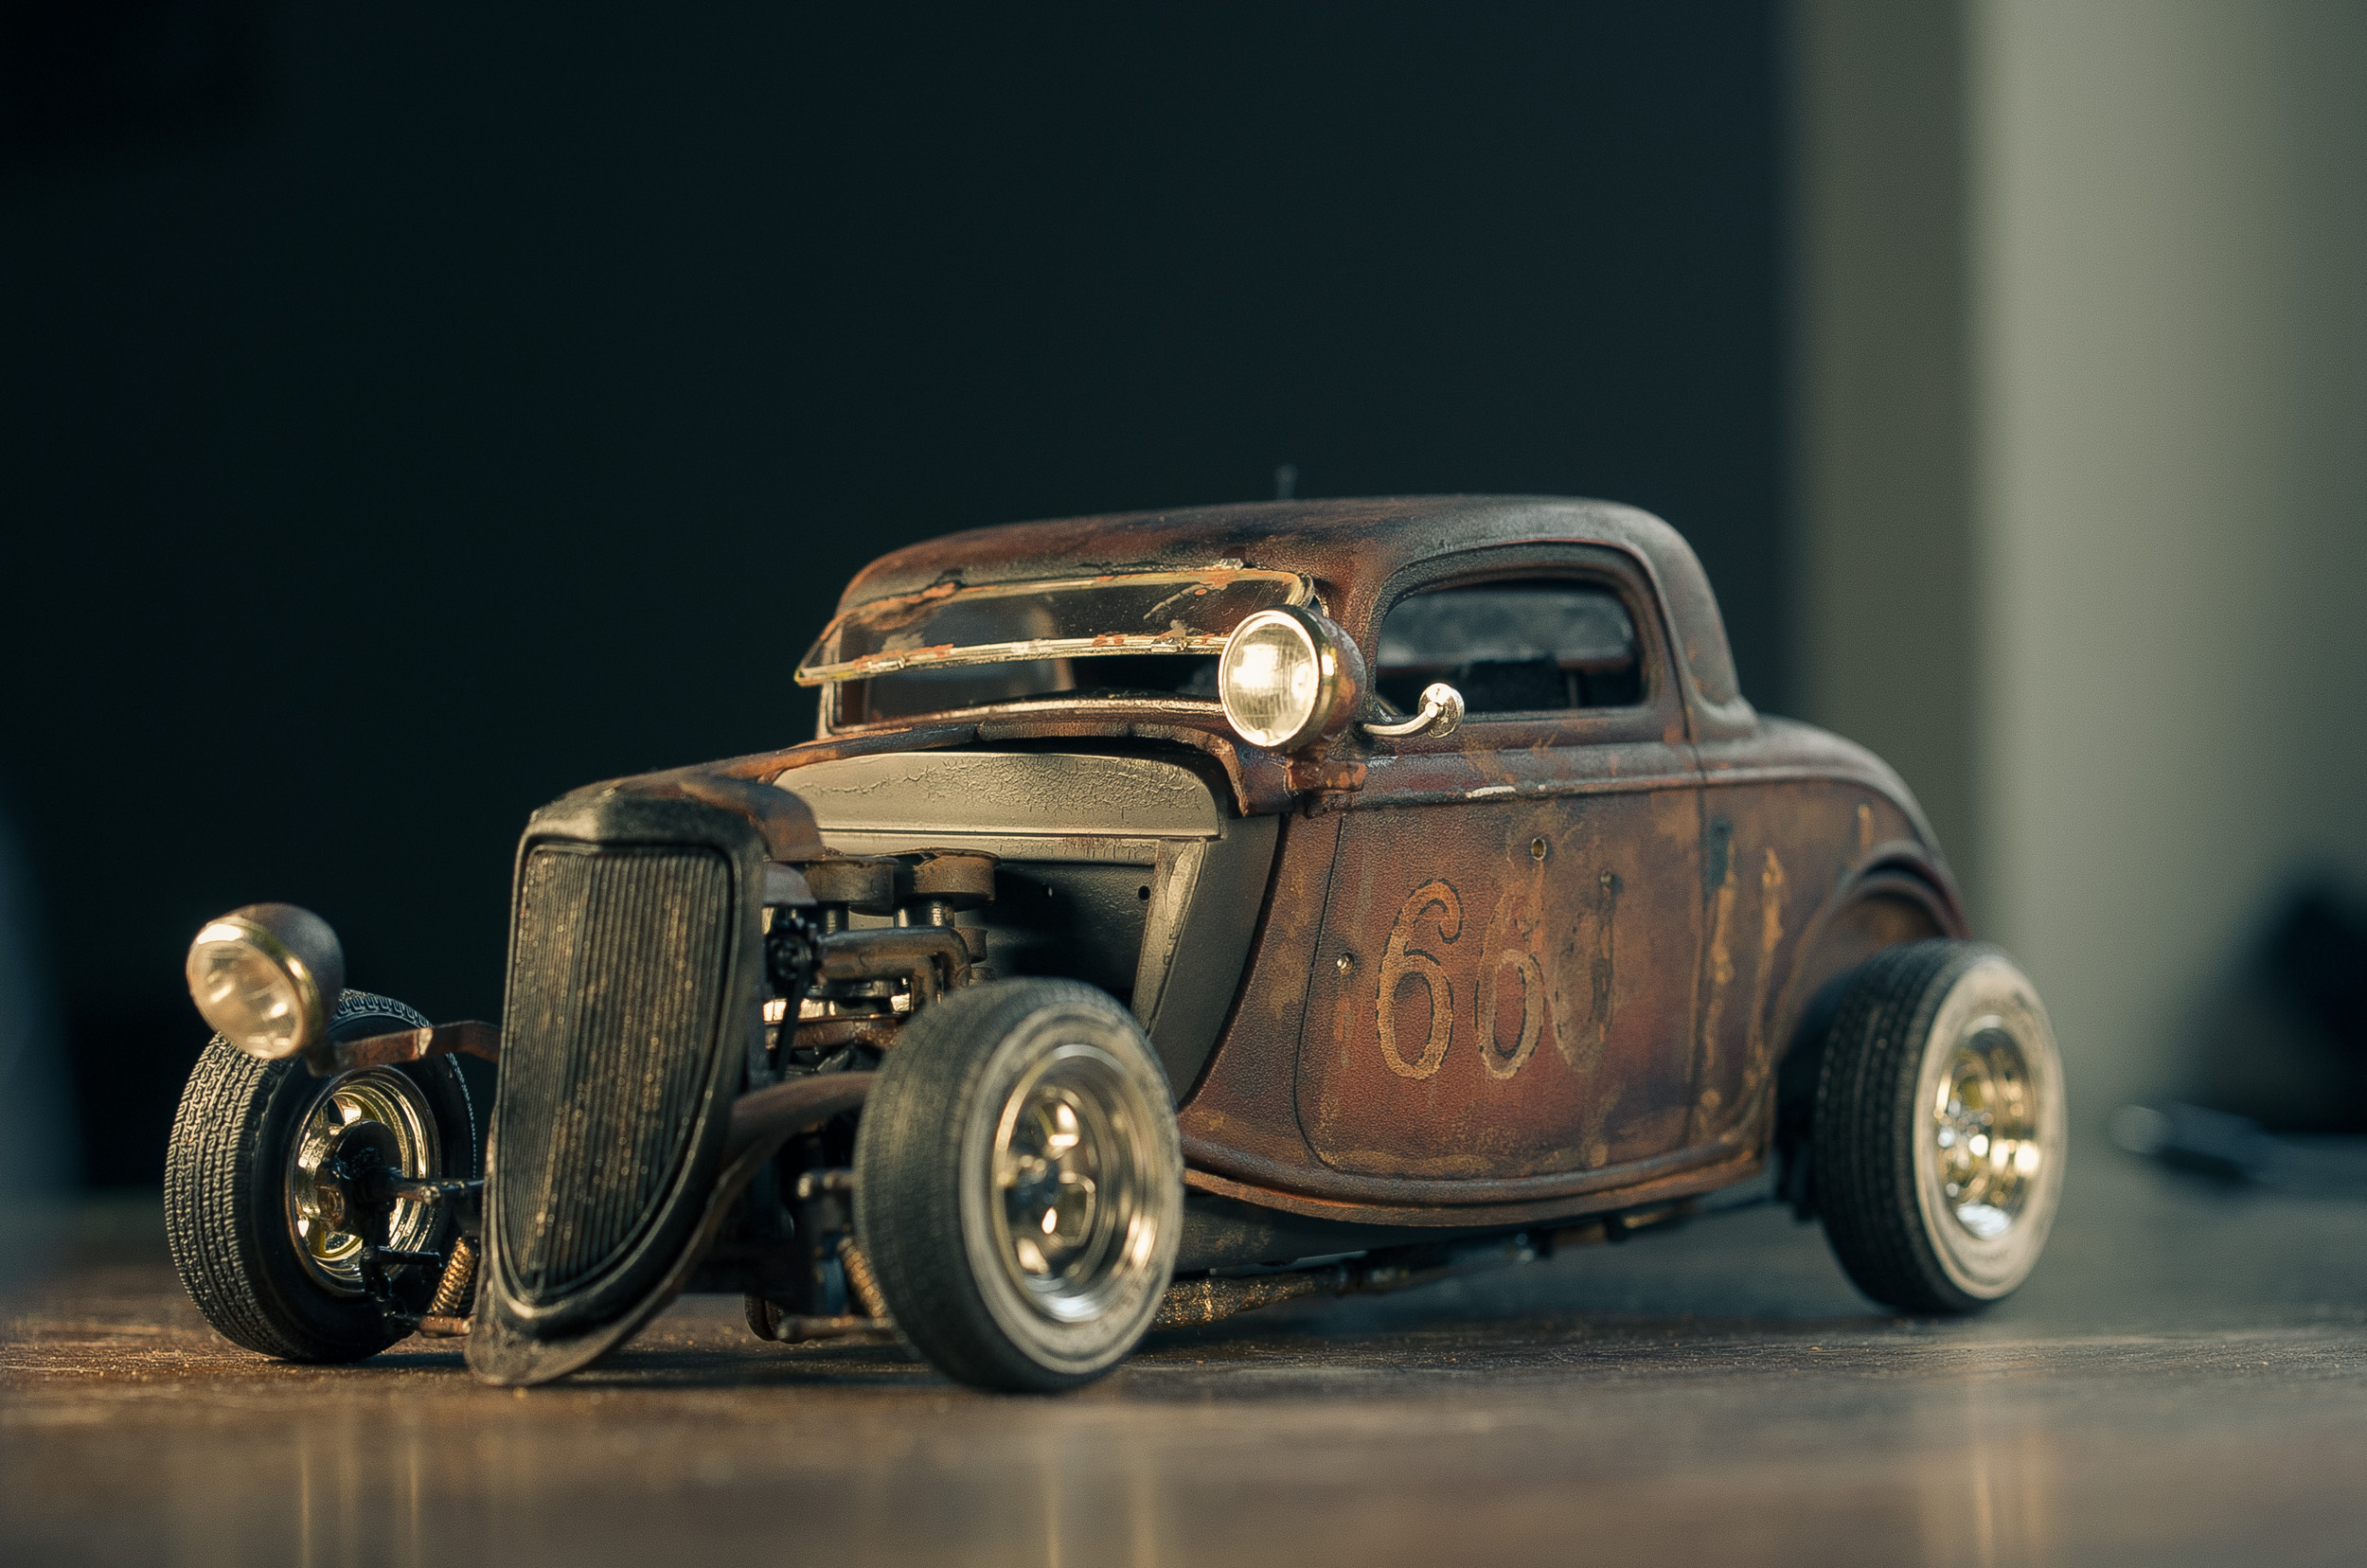 34 Ford Coupe RatRod - davidemartini.ink